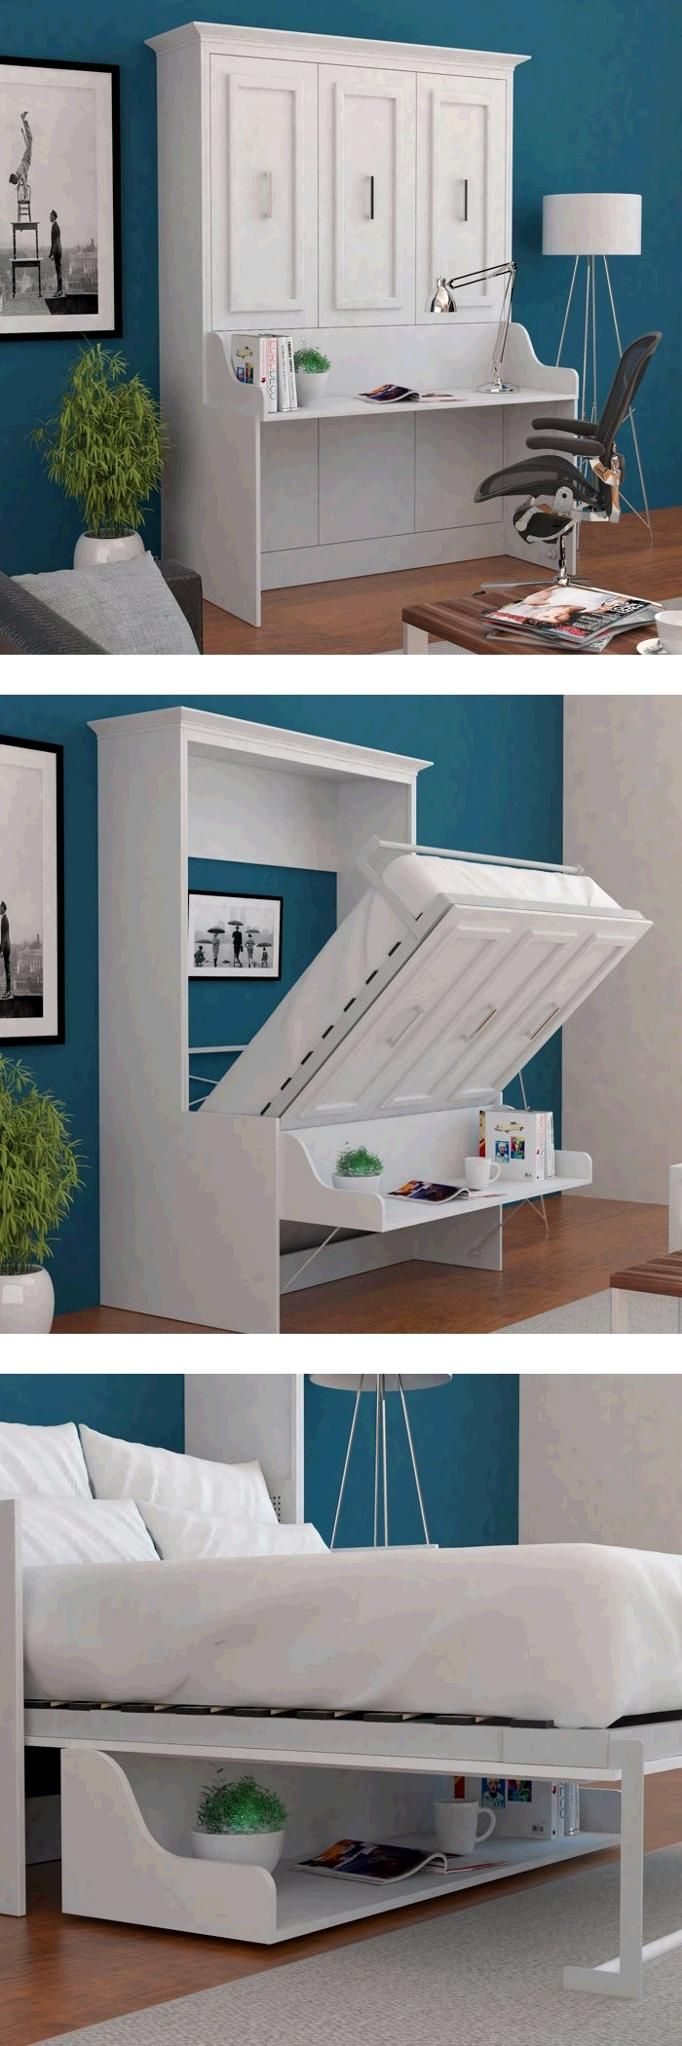 Bed Room Porter Full Portrait Wall Bed With Desk In White